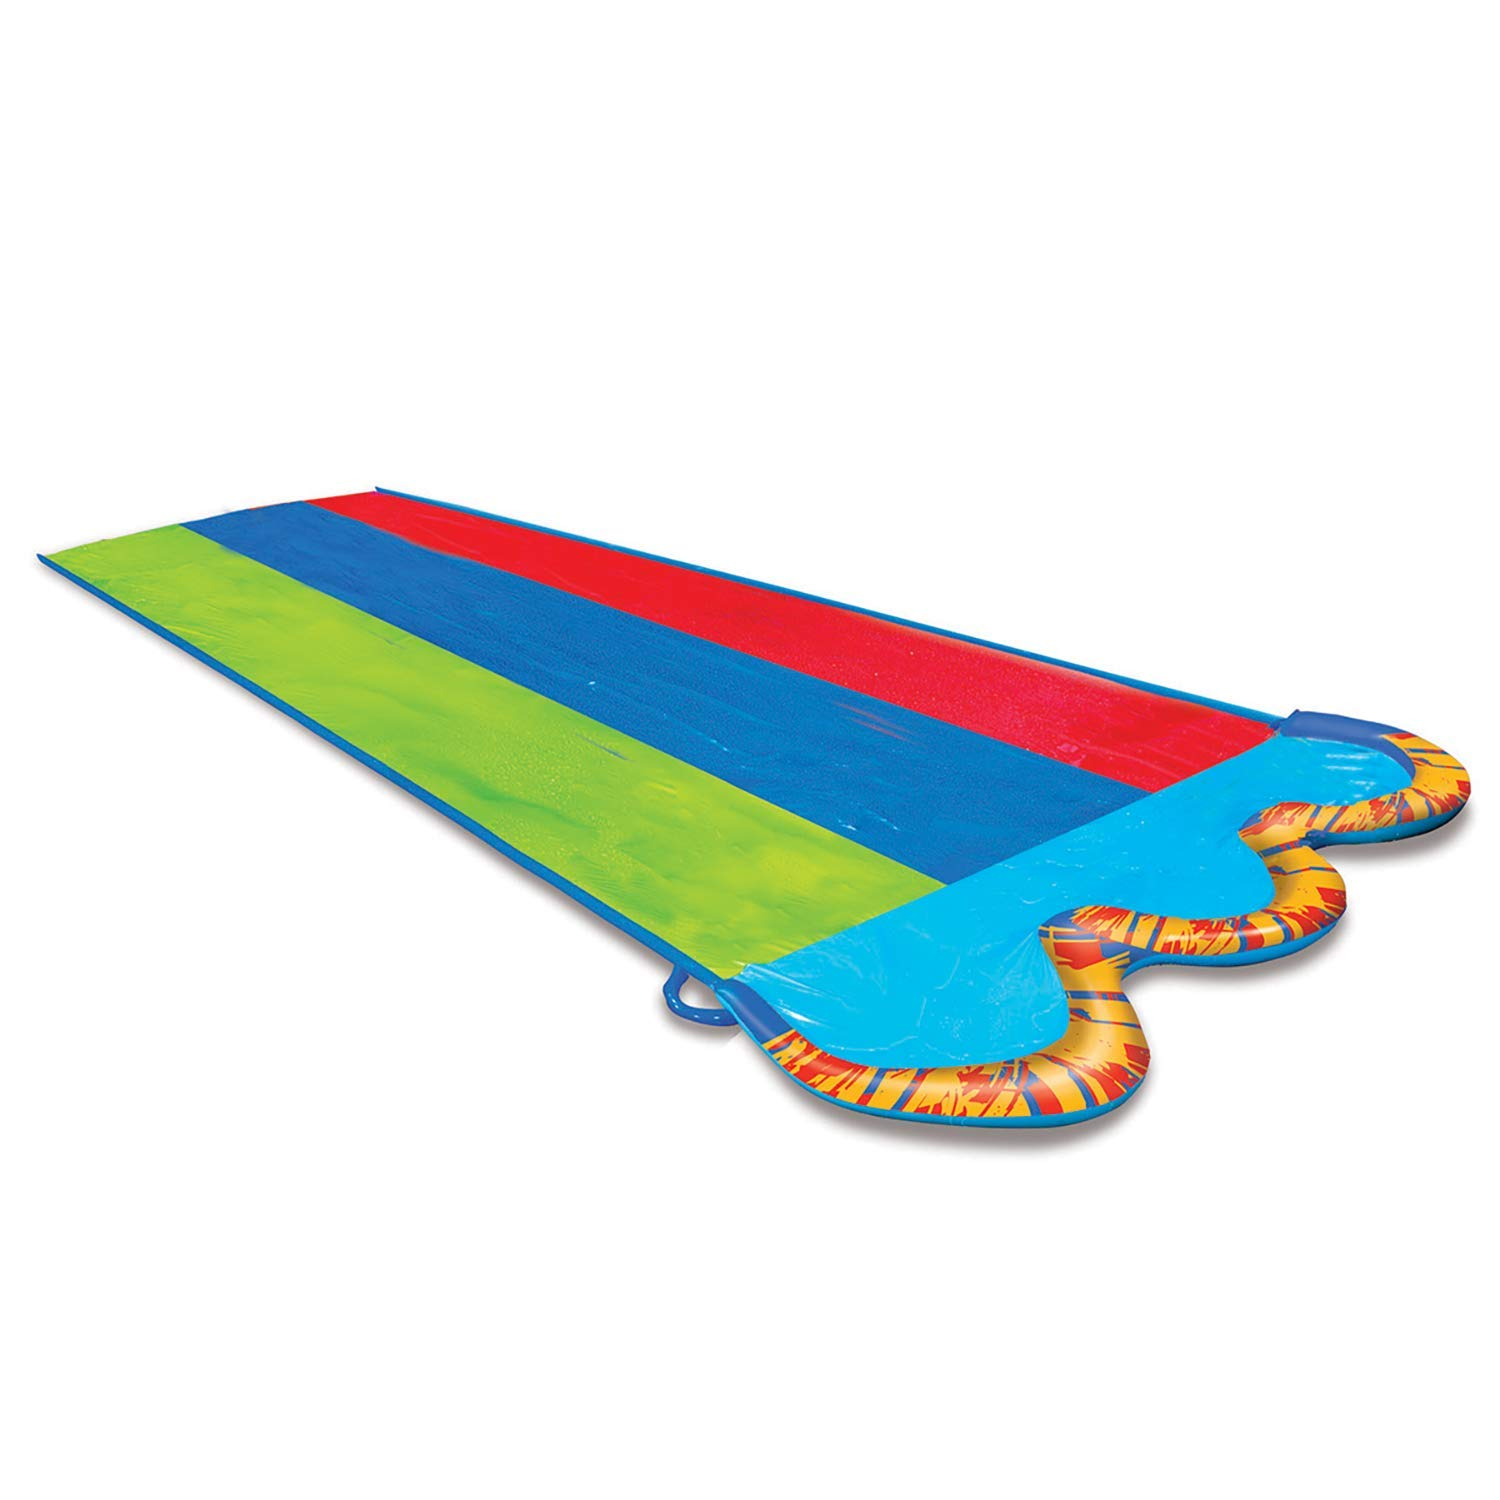 Banzai Triple Racer  16 Ft Water Slide-with 3 bodyboards included by BANZAI